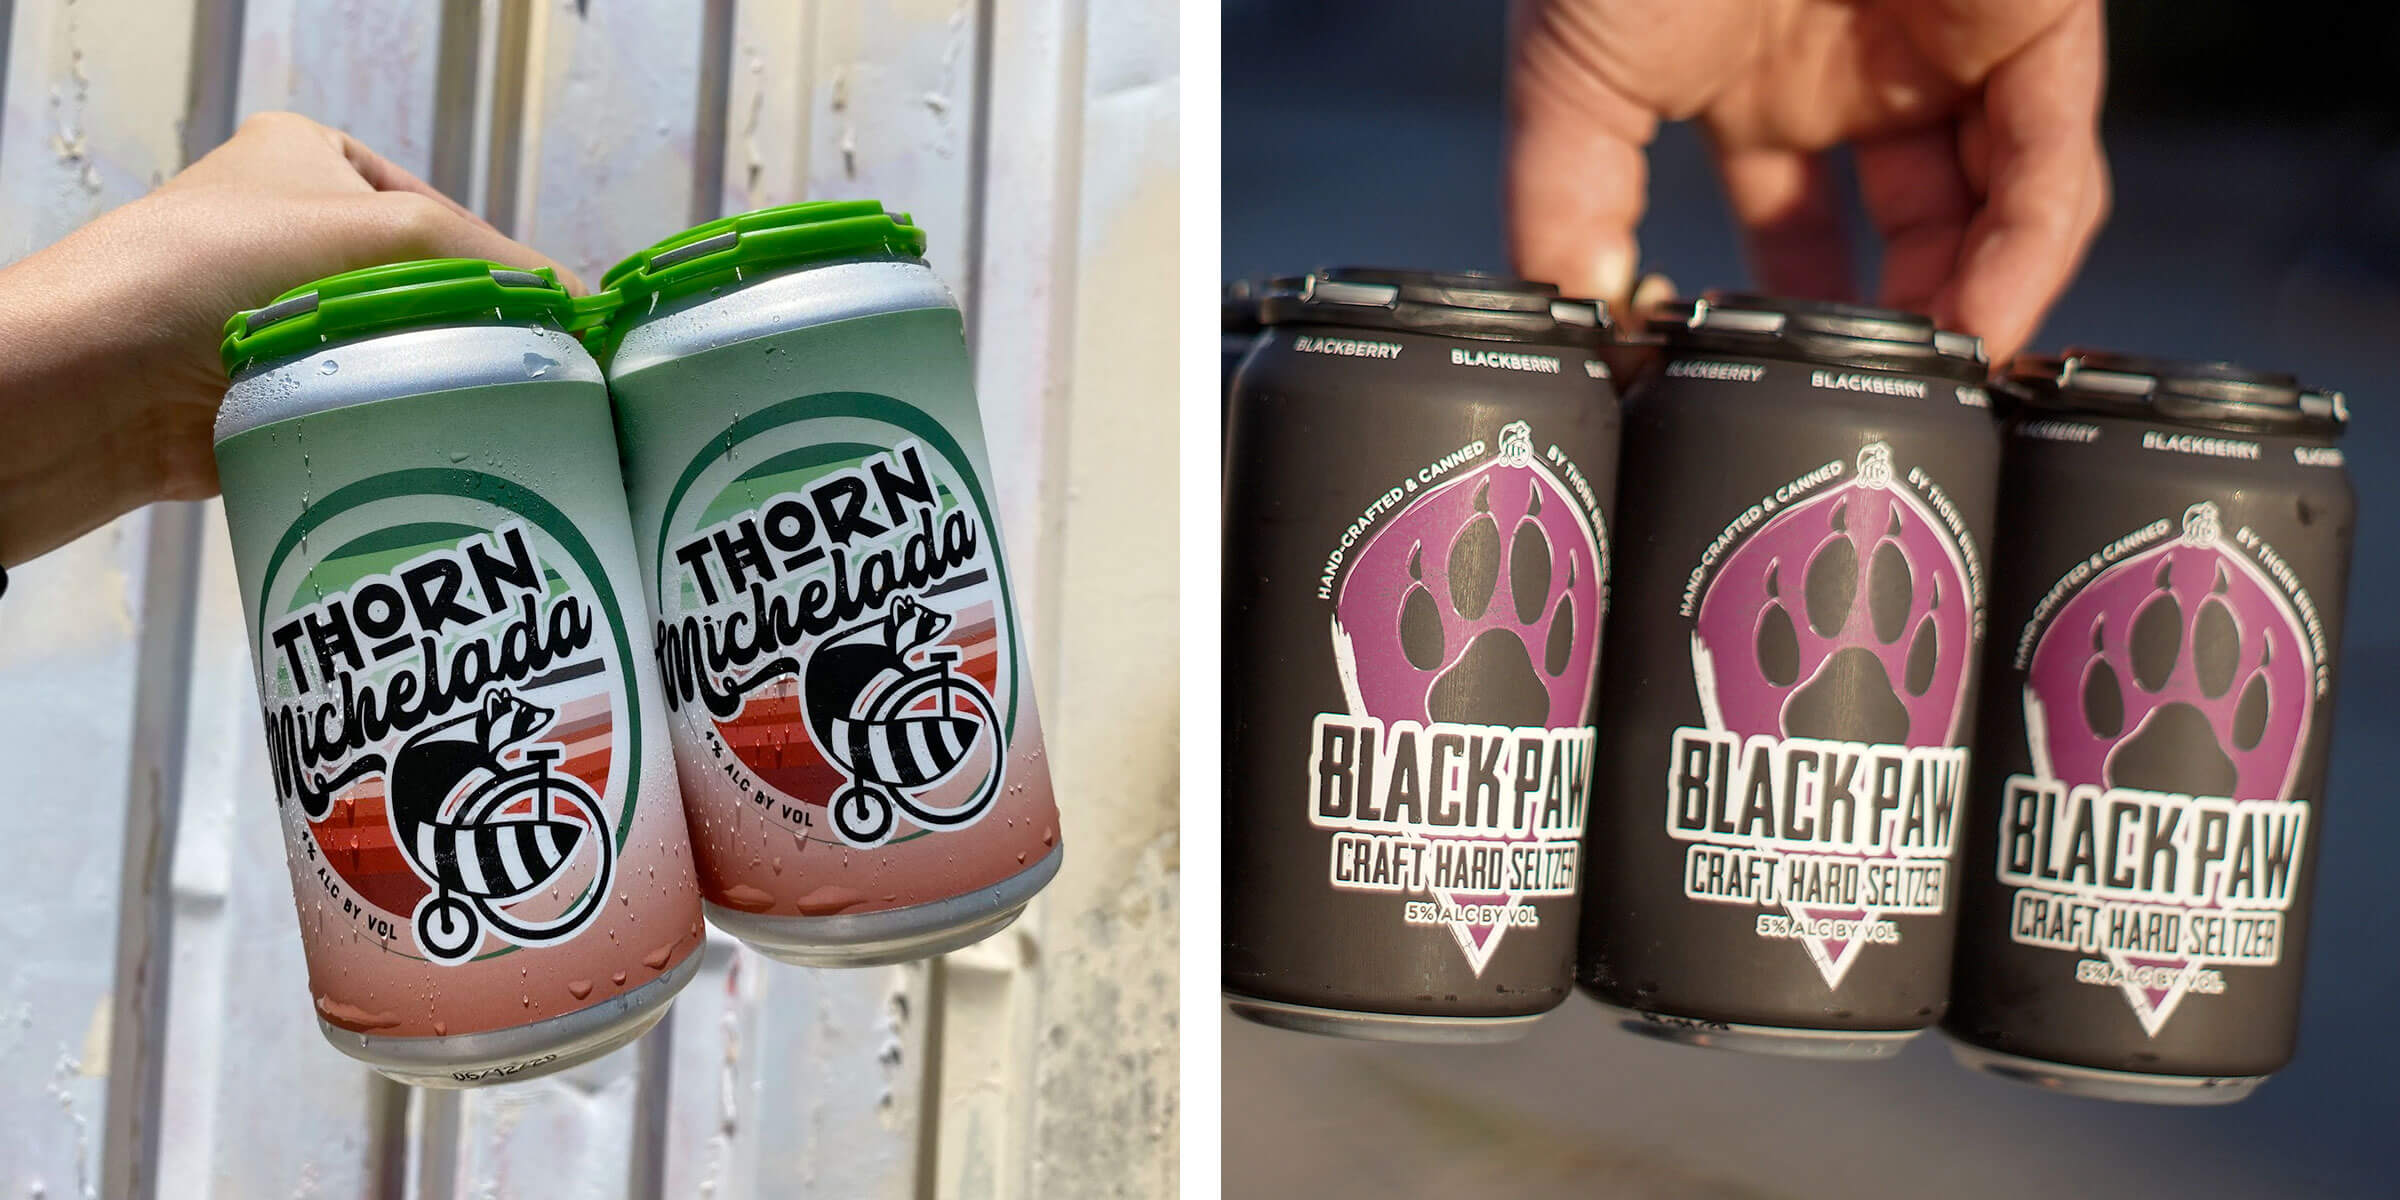 Thorn Brewing Co. is kicking off summer with the canned releases of the Thorn Michelada and the Black Paw Blackberry Hard Seltzer.